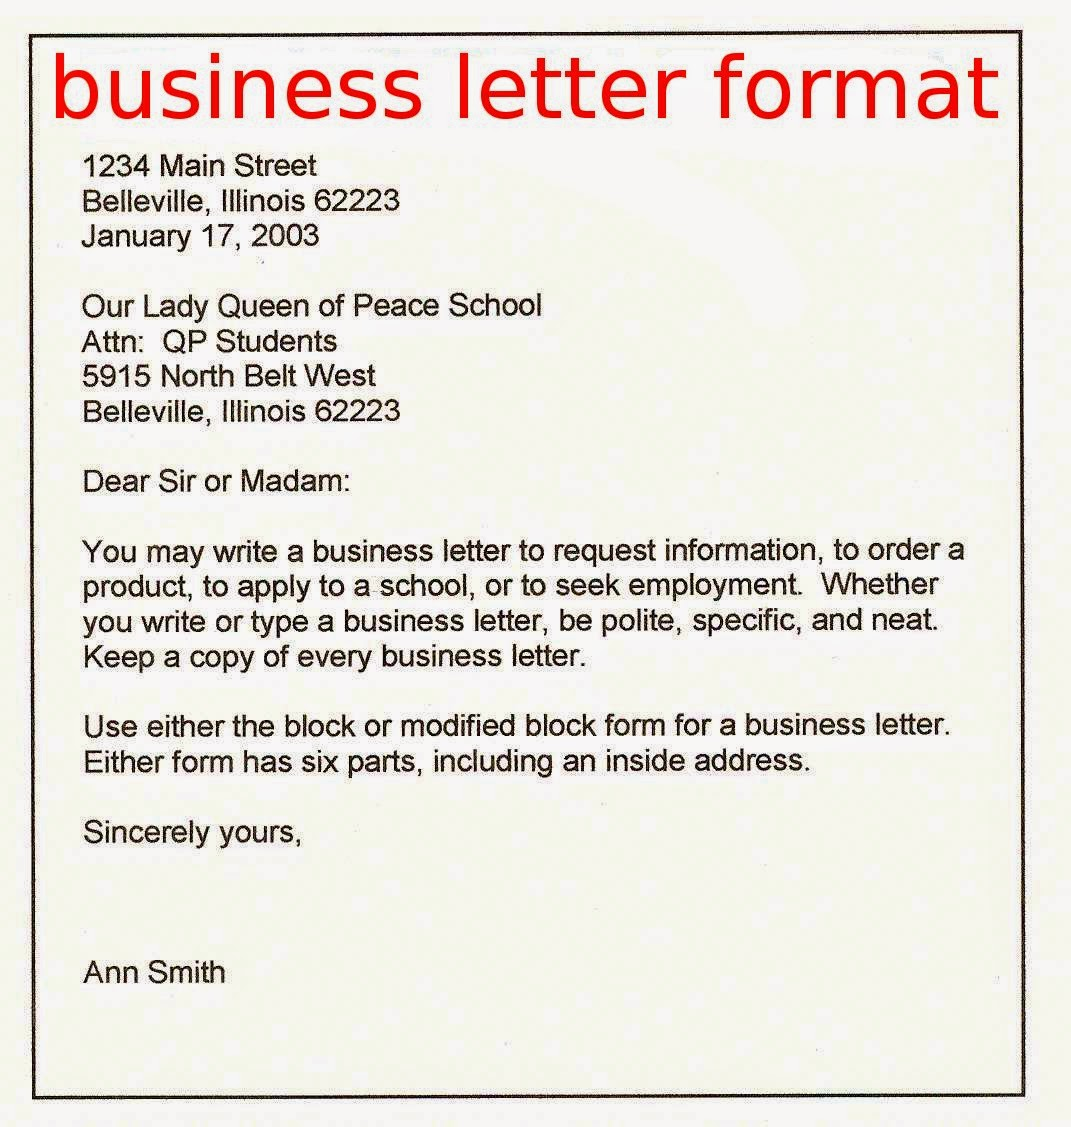 april 2015 samples business letters